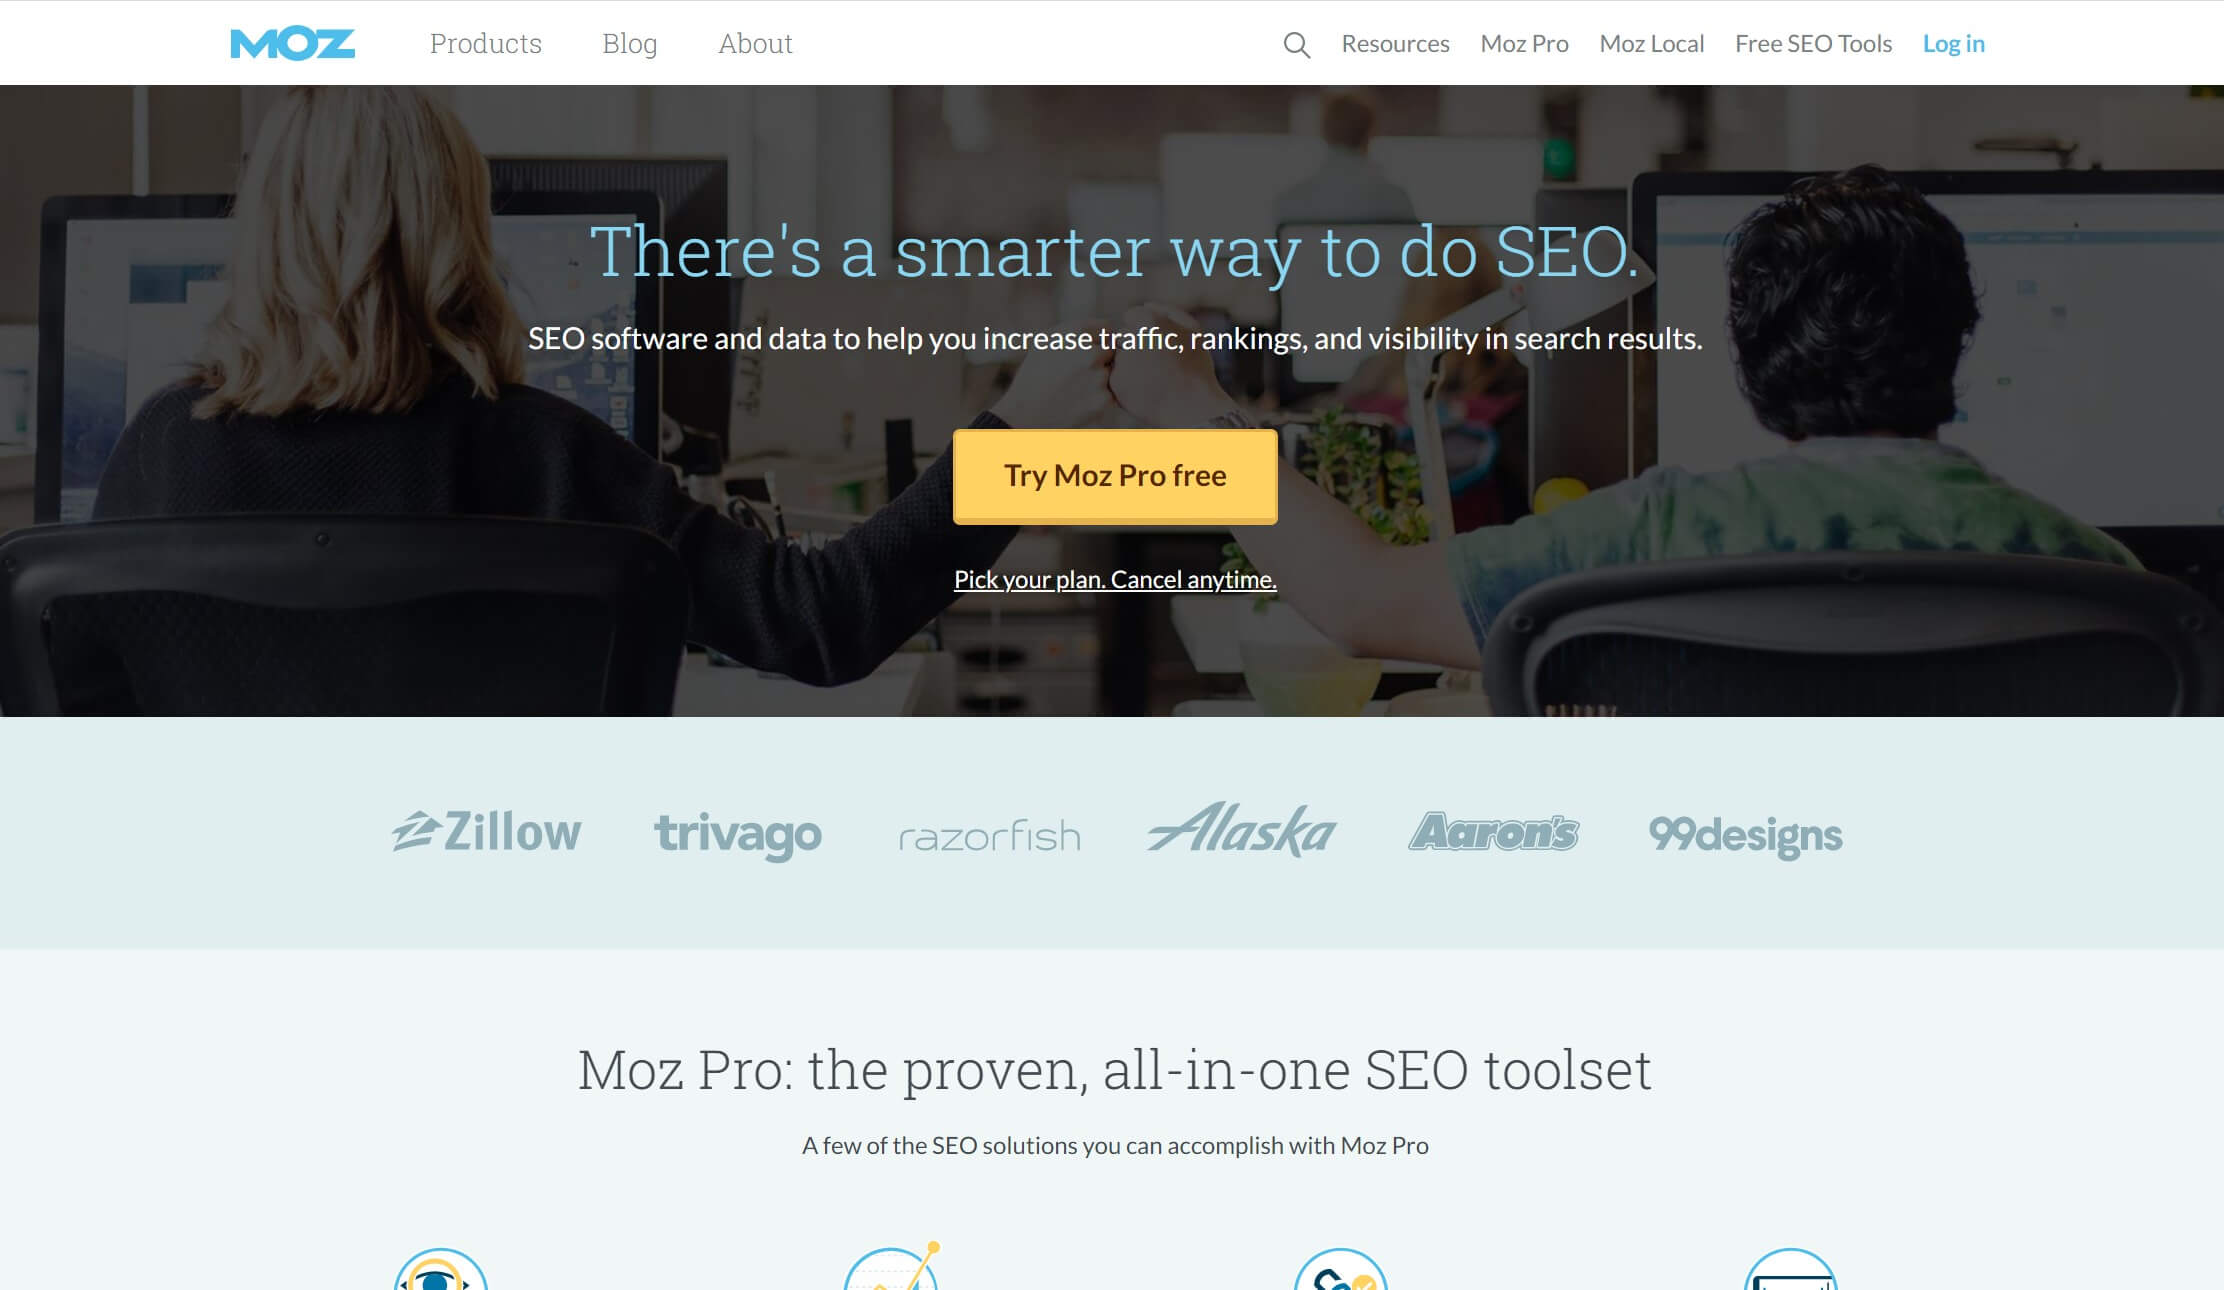 The Moz Pro home page.